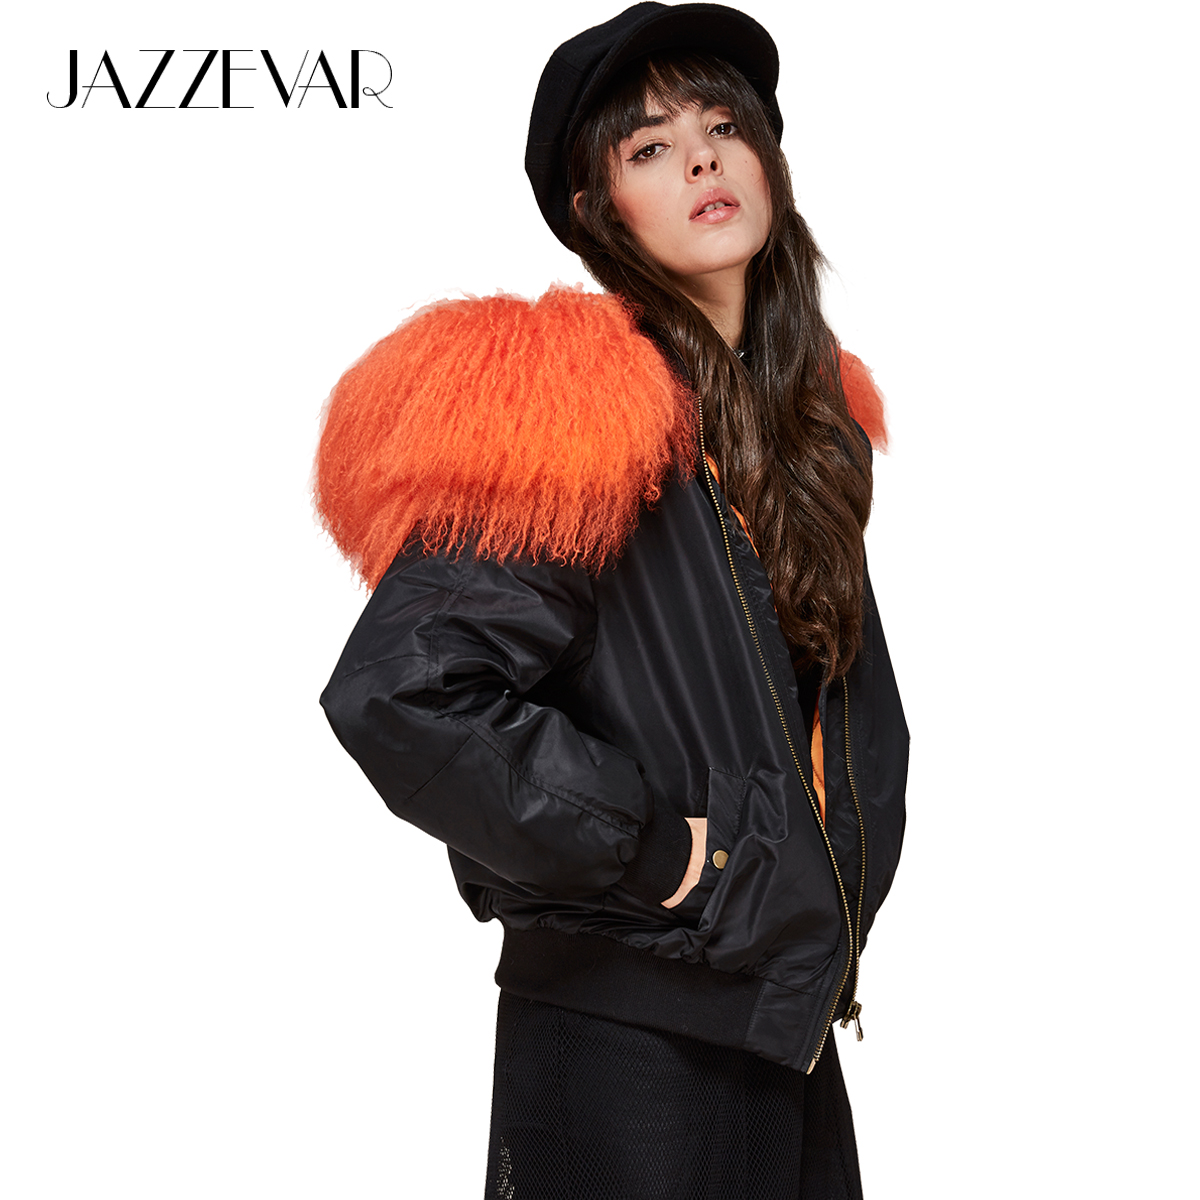 JAZZEVAR 2019 New winter fashion street woman hooded bomber jacket mongolia sheep fur collar short basic